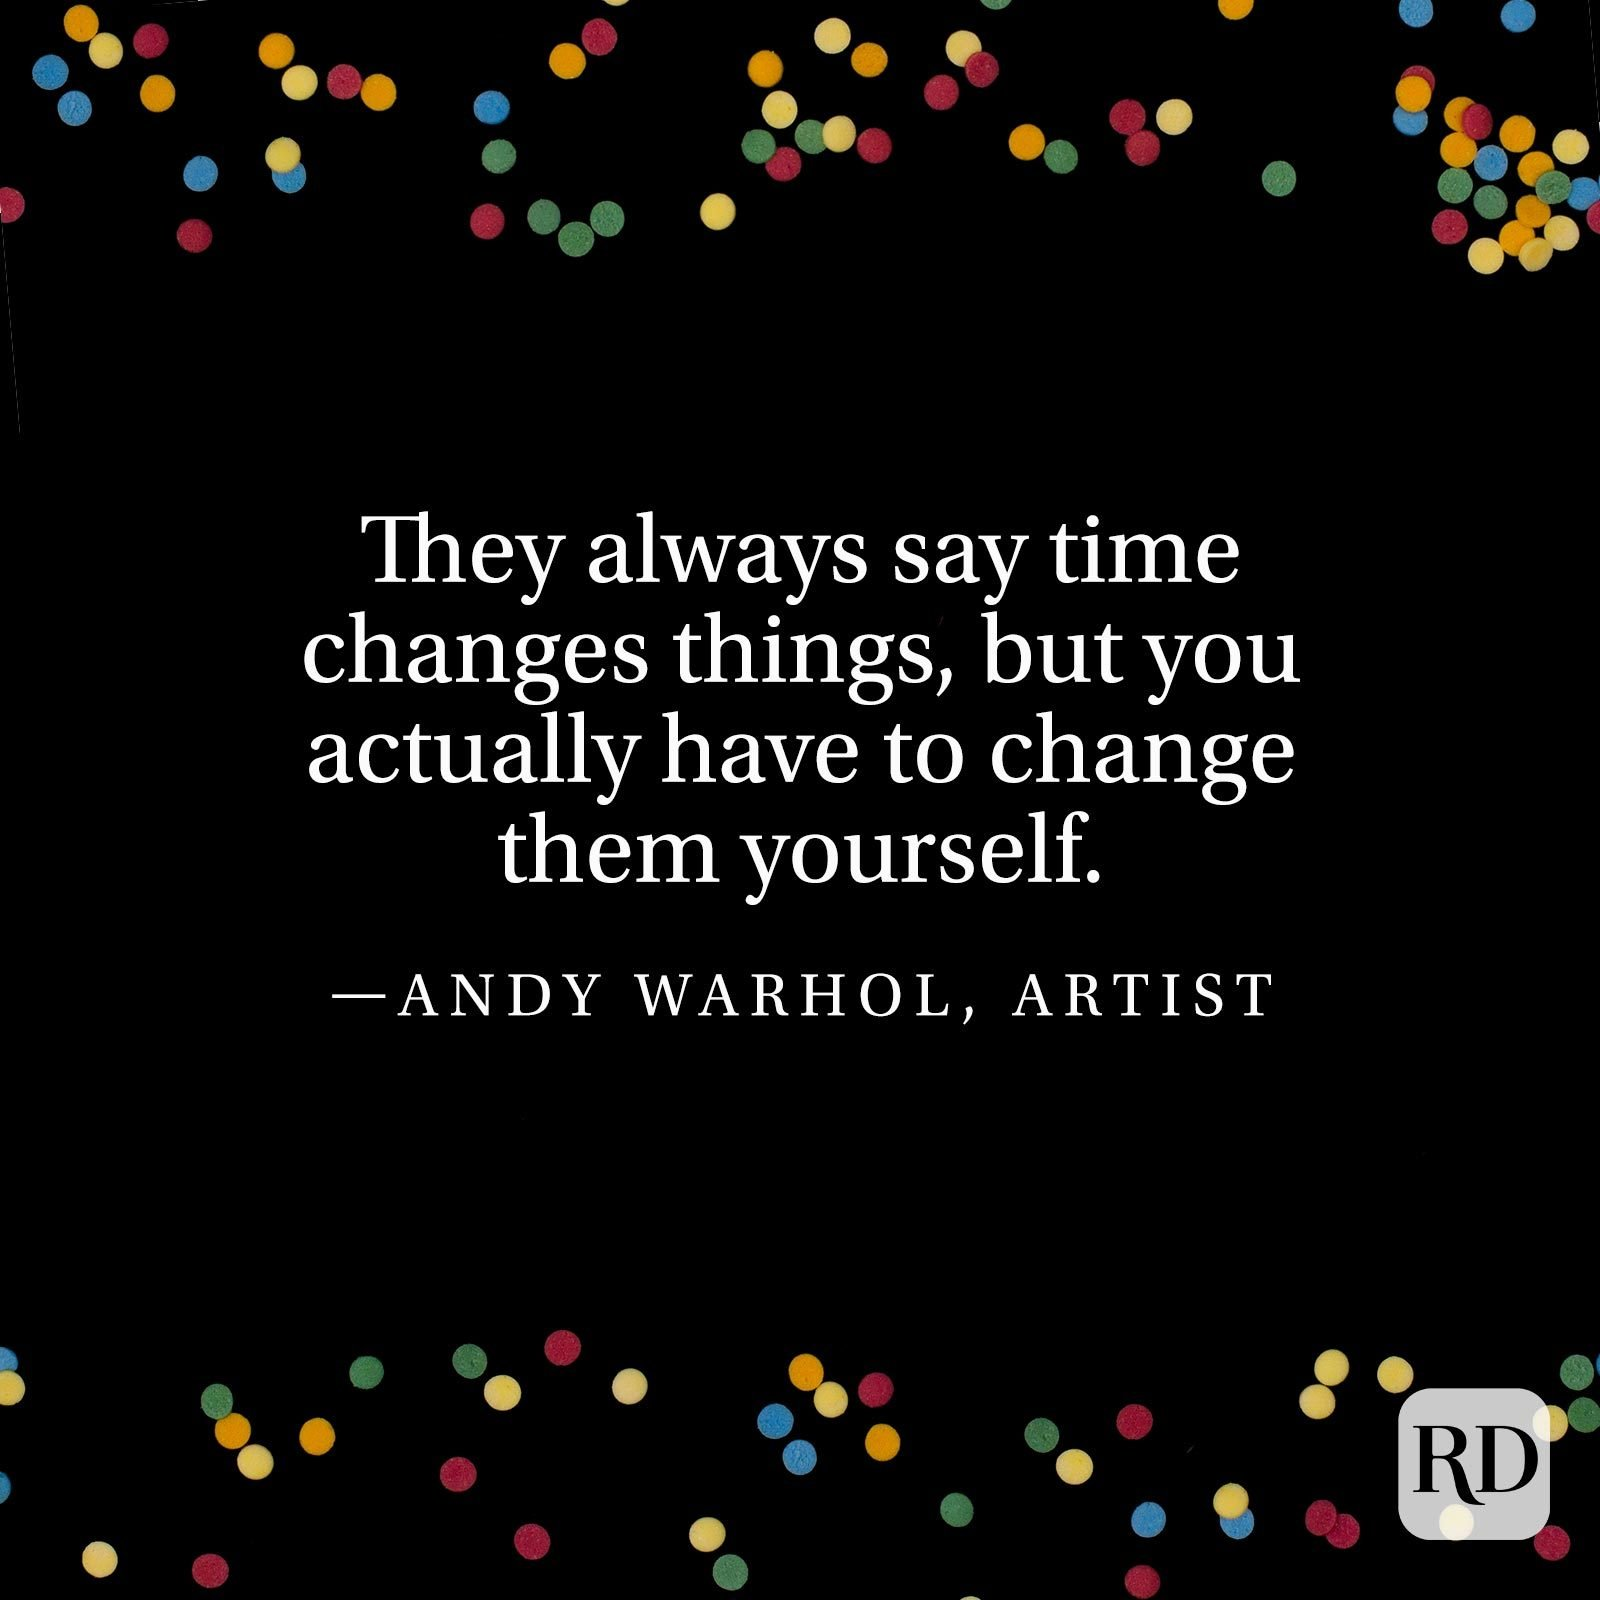 """They always say time changes things, but you actually have to change them yourself."" —Andy Warhol, artist."